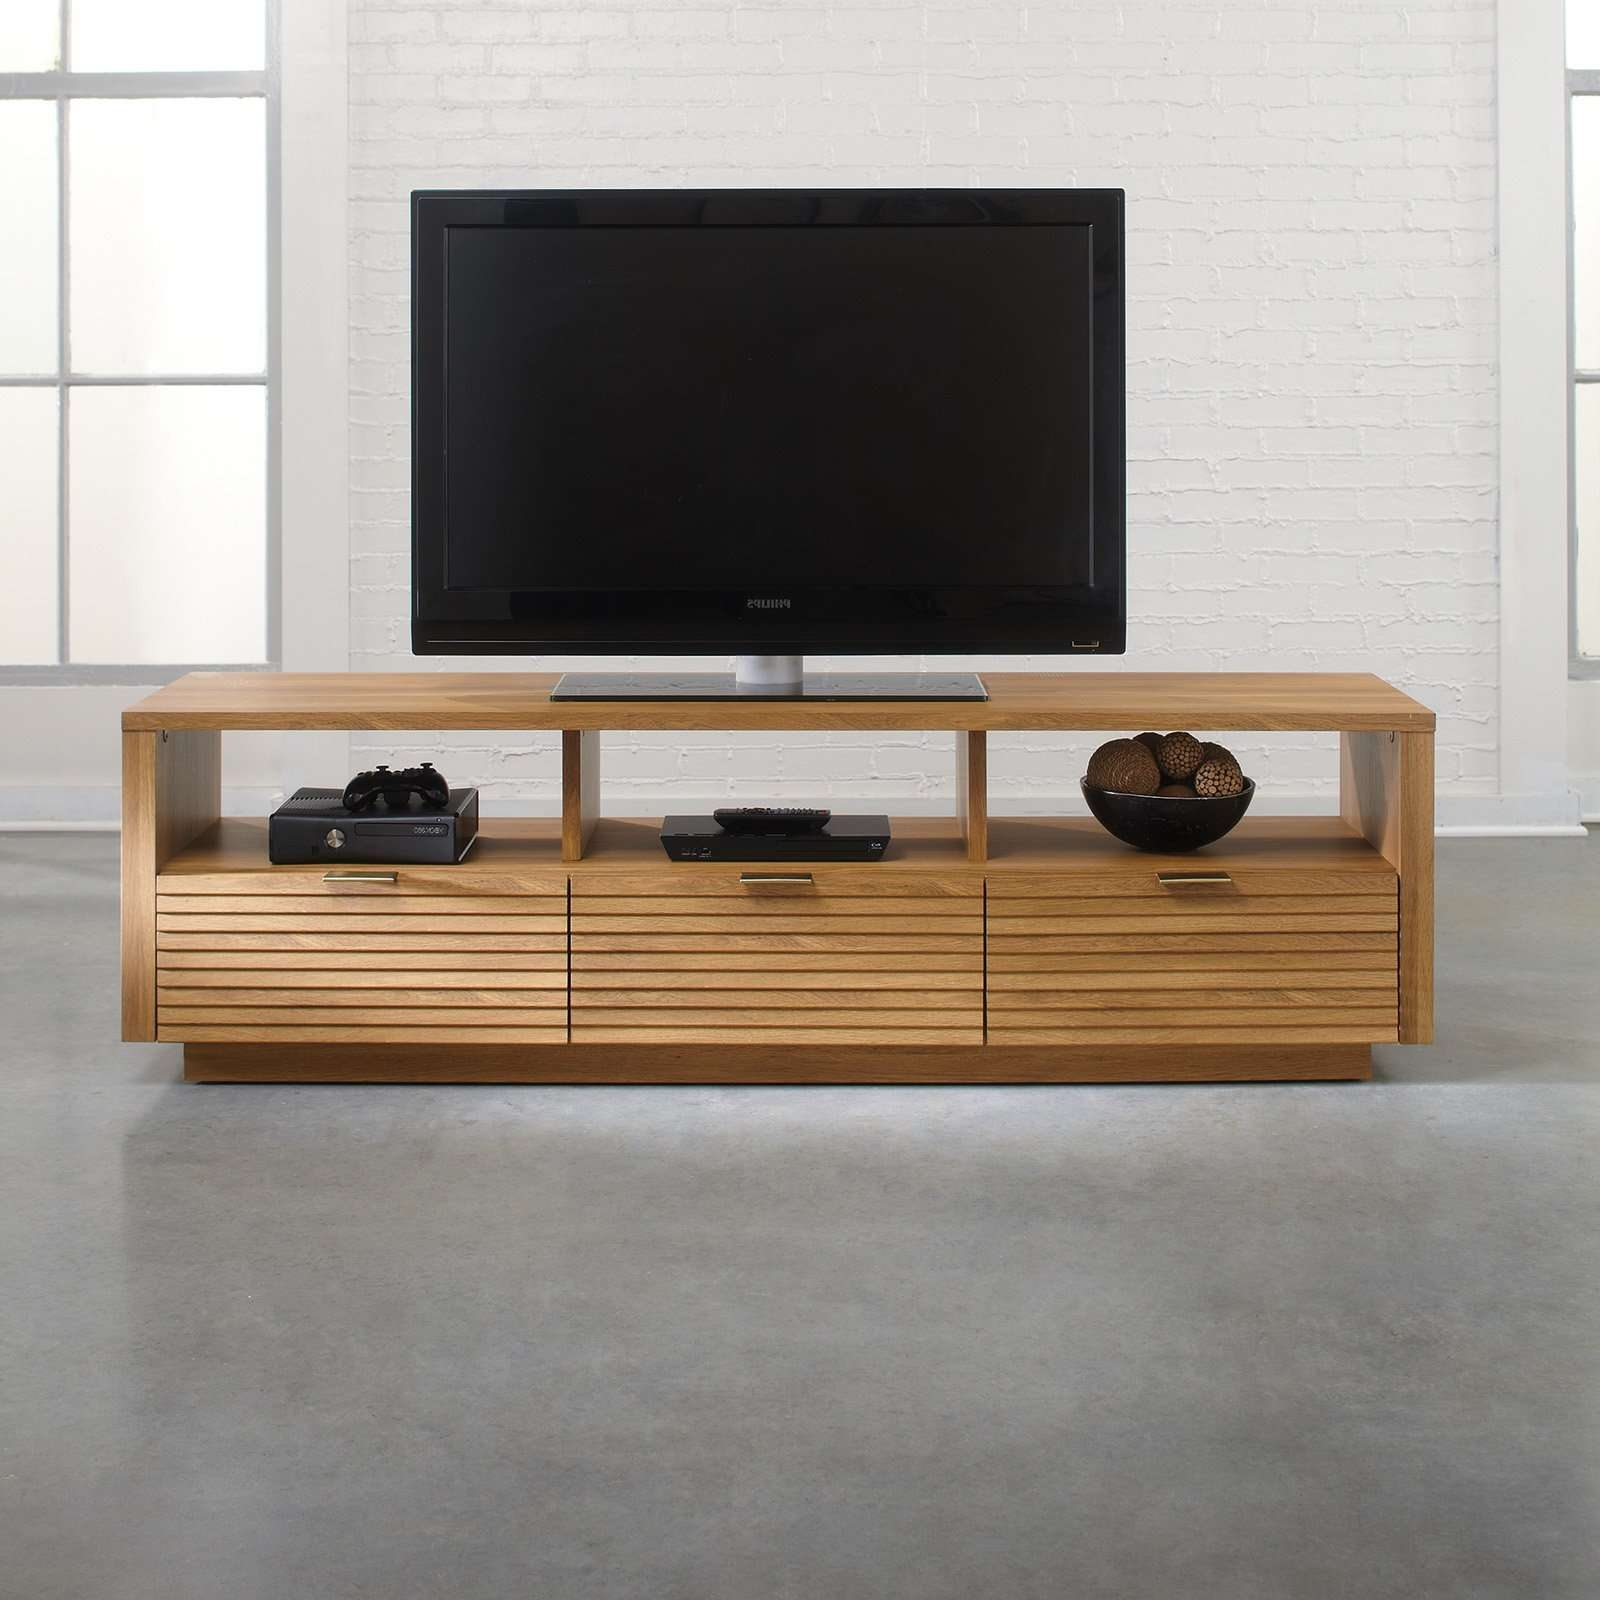 Inspirational Tv Stand Oak 95 In Simple Home Decoration Ideas With With Regard To Low Oak Tv Stands (Gallery 20 of 20)